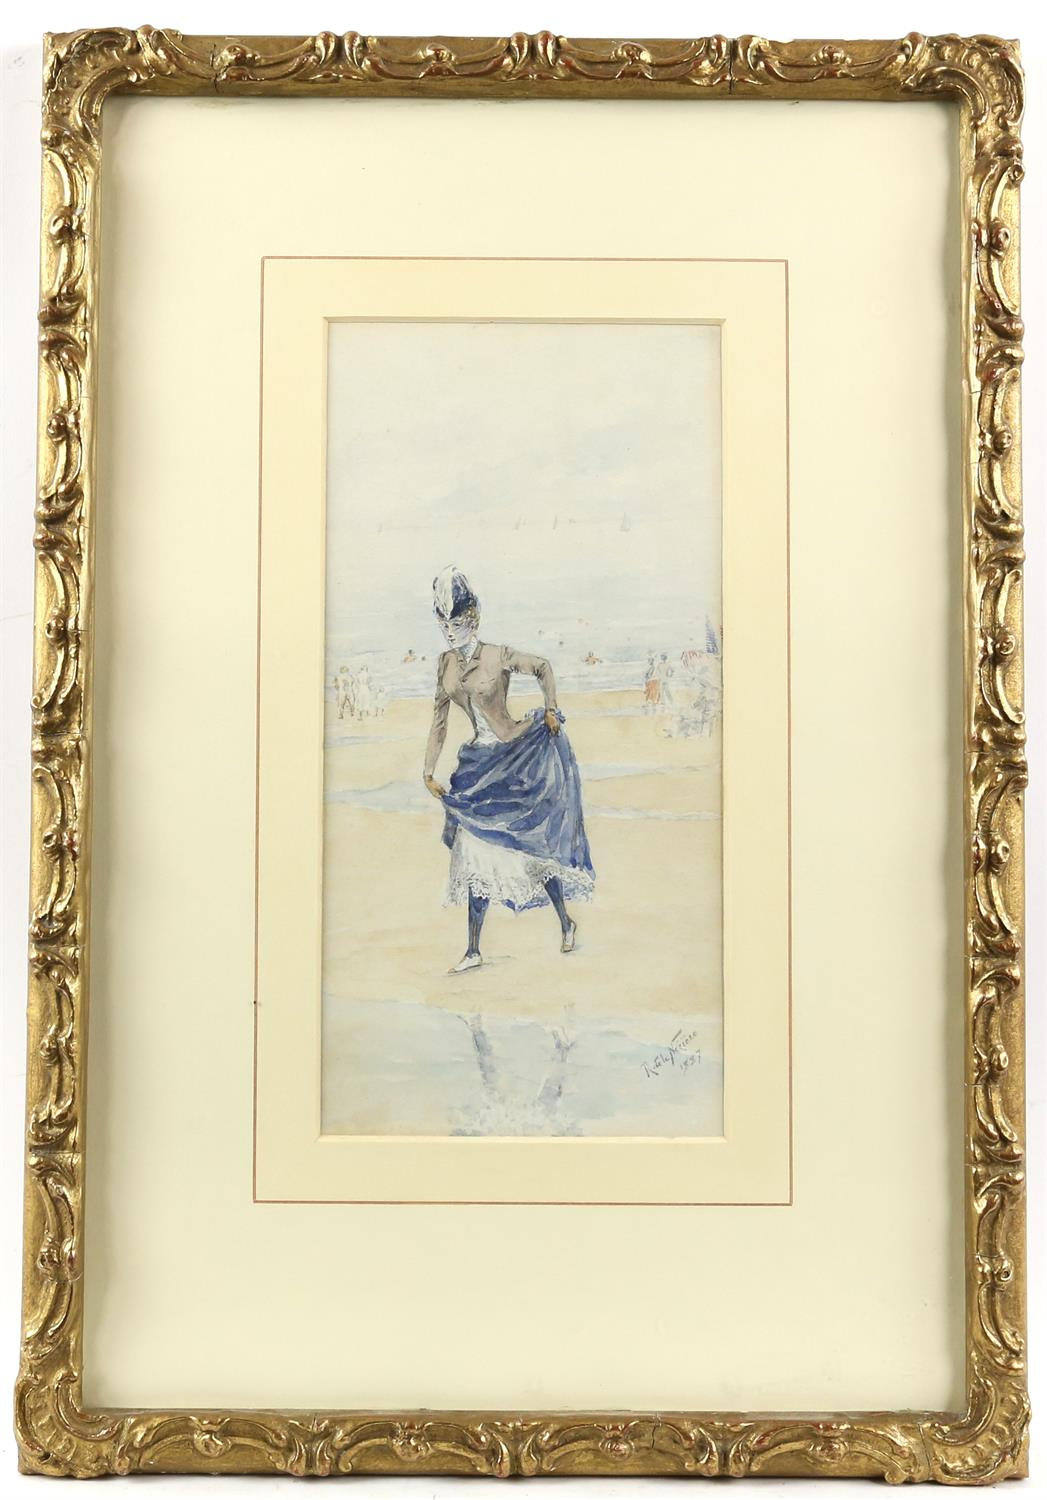 Raymond de la Neziere, French 1865-1953, lady in a long dress on a beach, signed and dated 1887, - Image 2 of 3